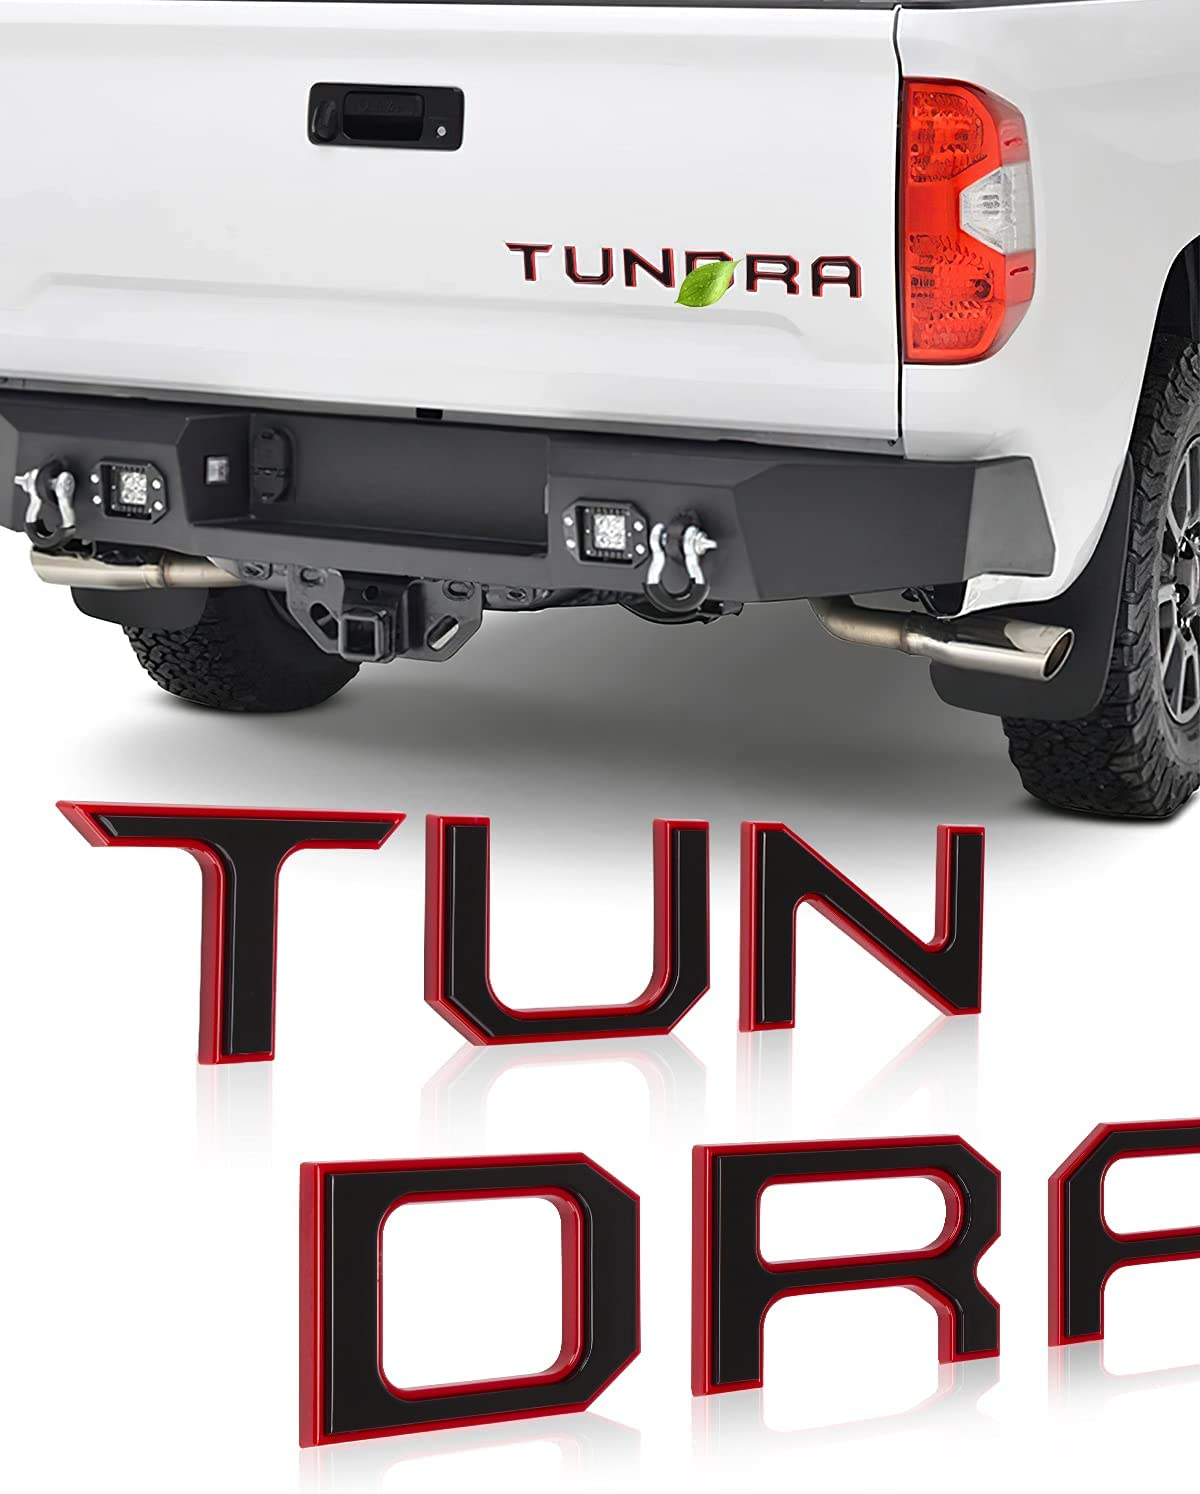 Tailgate Elegant Insert Letters Compatible 2014-2021 Tundra with Challenge the lowest price of Japan ☆ Toyota